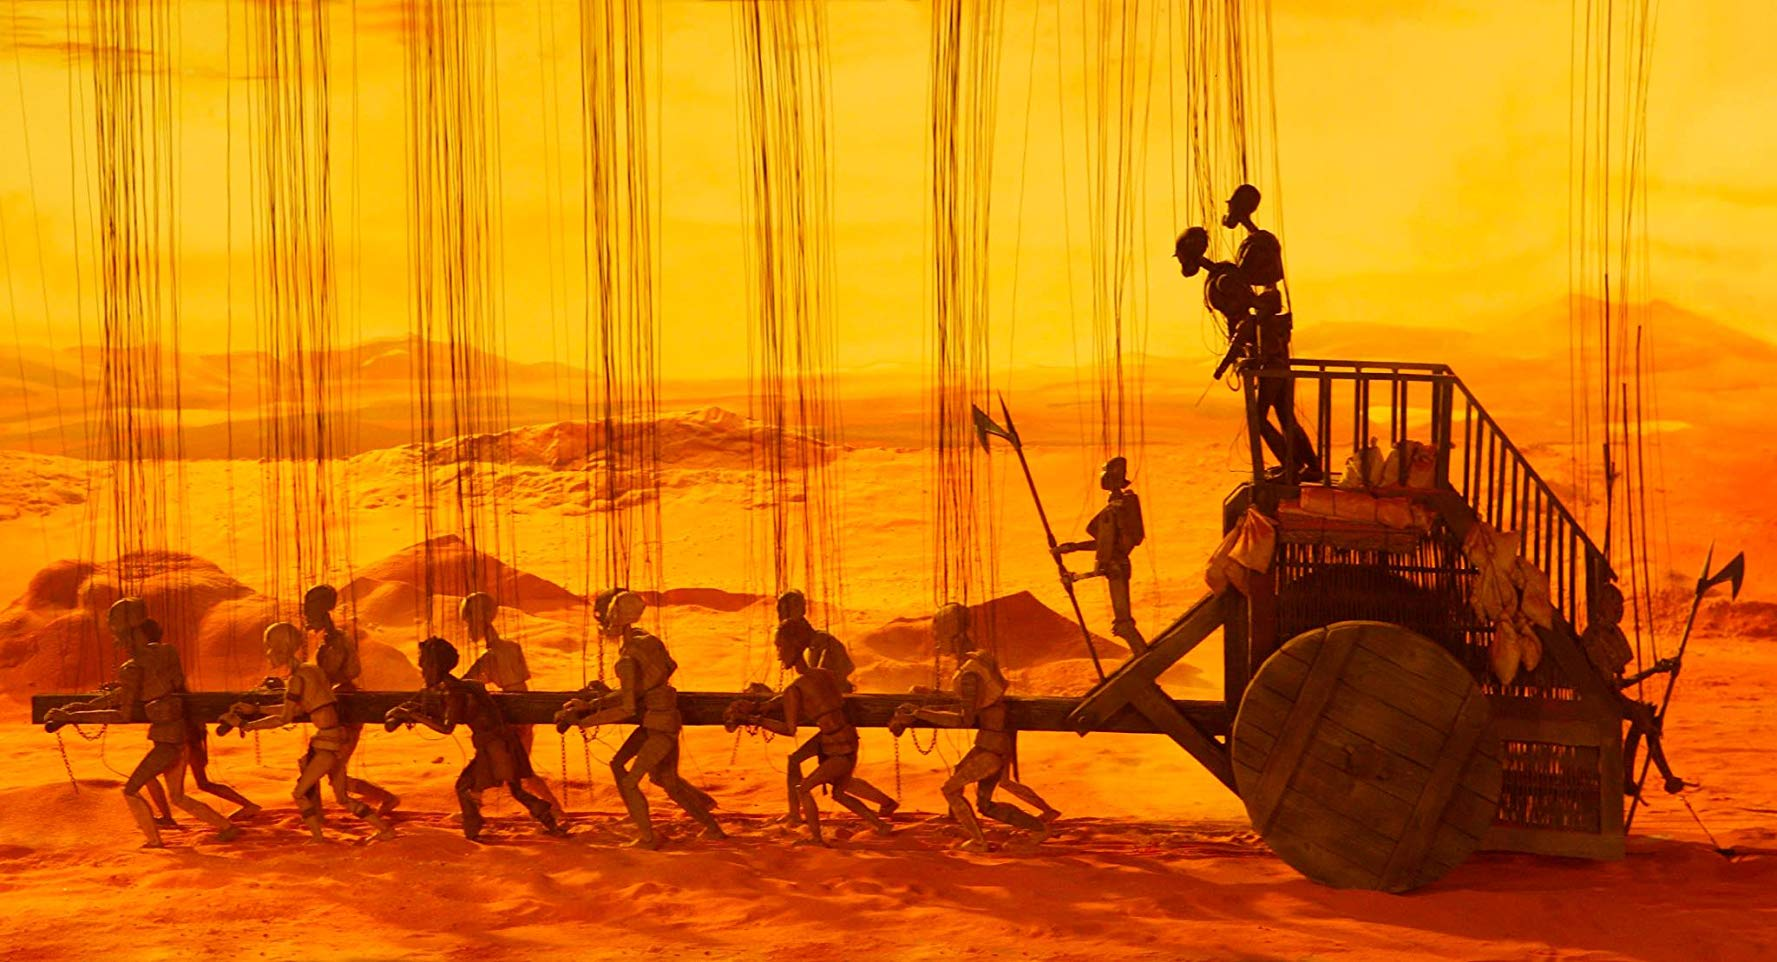 Wagon train pulled by slaves in Strings (2004)